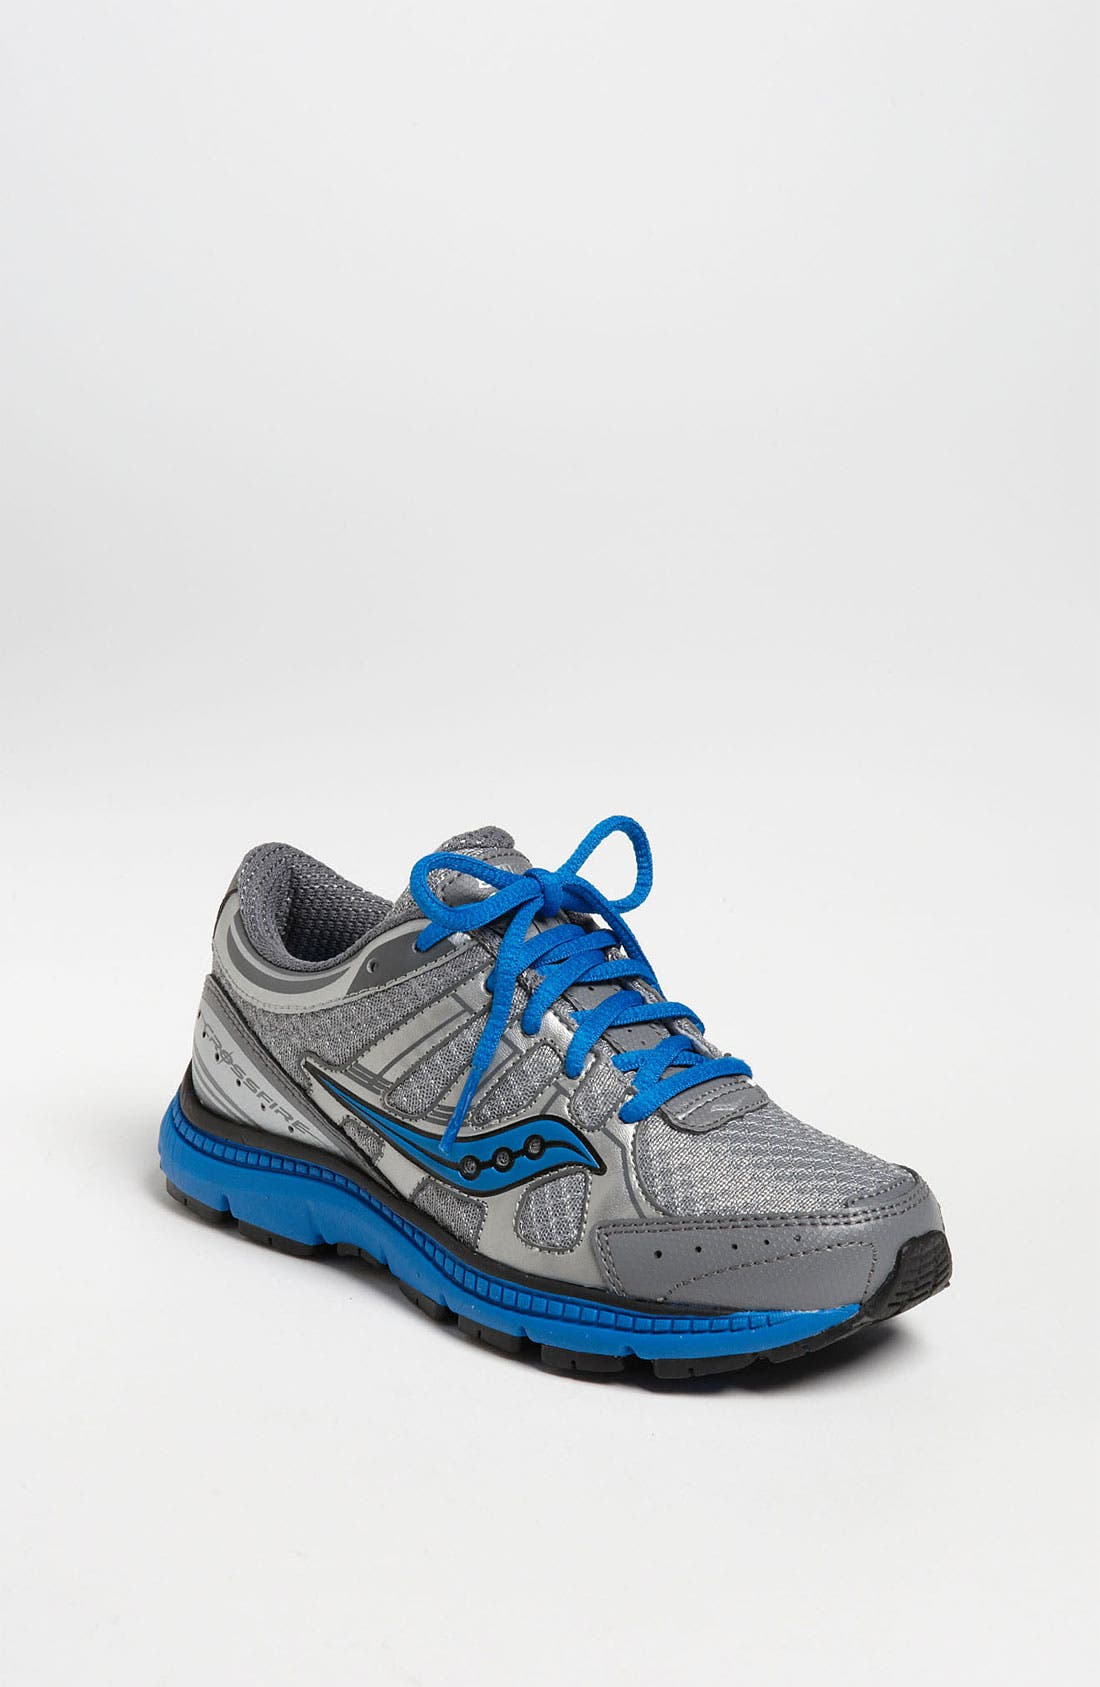 Alternate Image 1 Selected - Saucony 'Crossfire' Athletic Shoe (Toddler, Little Kid & Big Kid)